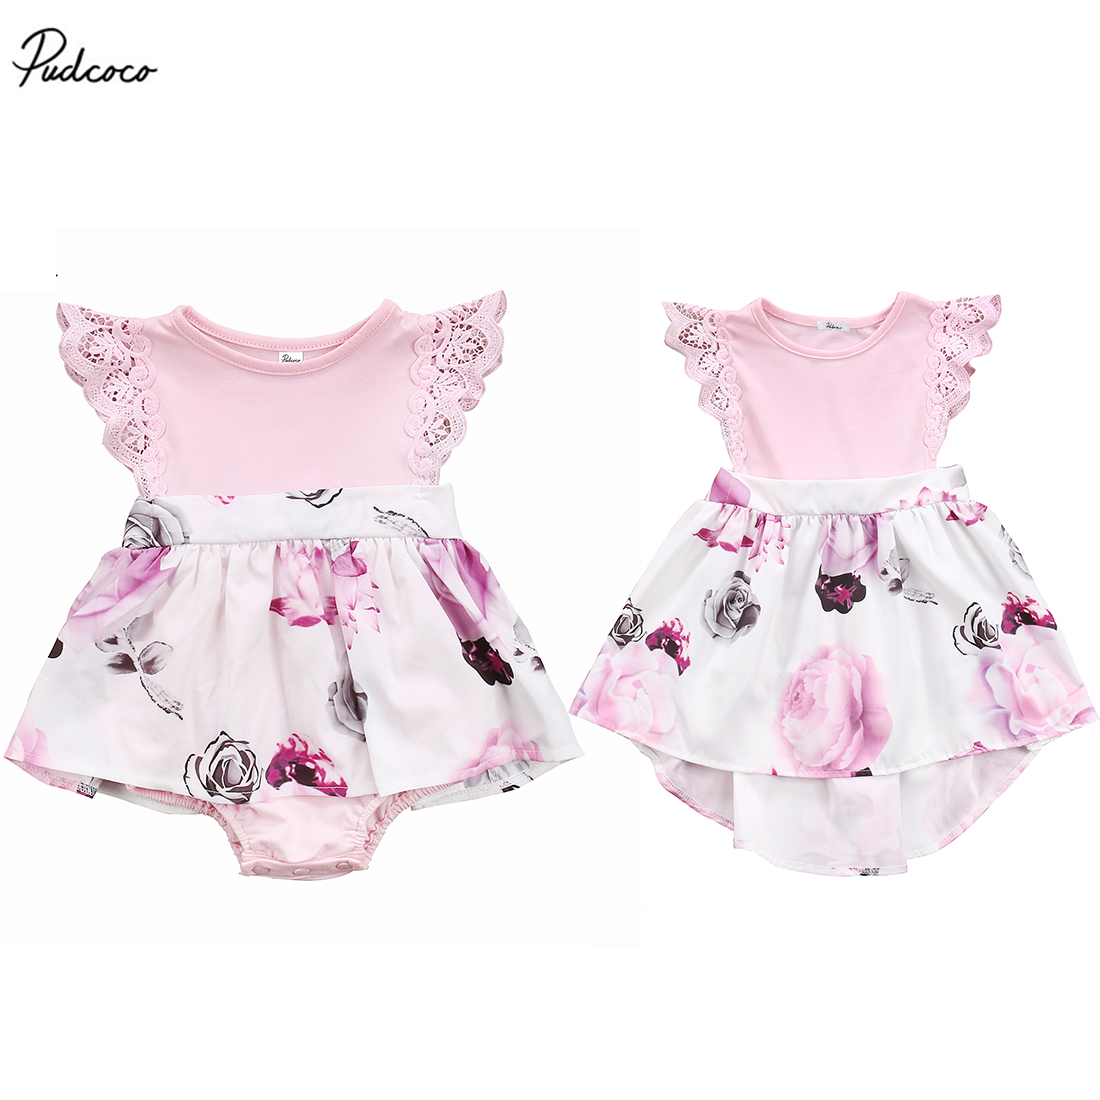 Pudcoco Sister Matching Floral Lace Toddler Kids Girl Dress Newborn Baby Sisters Dress Sleveless Romper/Sundress Clothes 0-6T